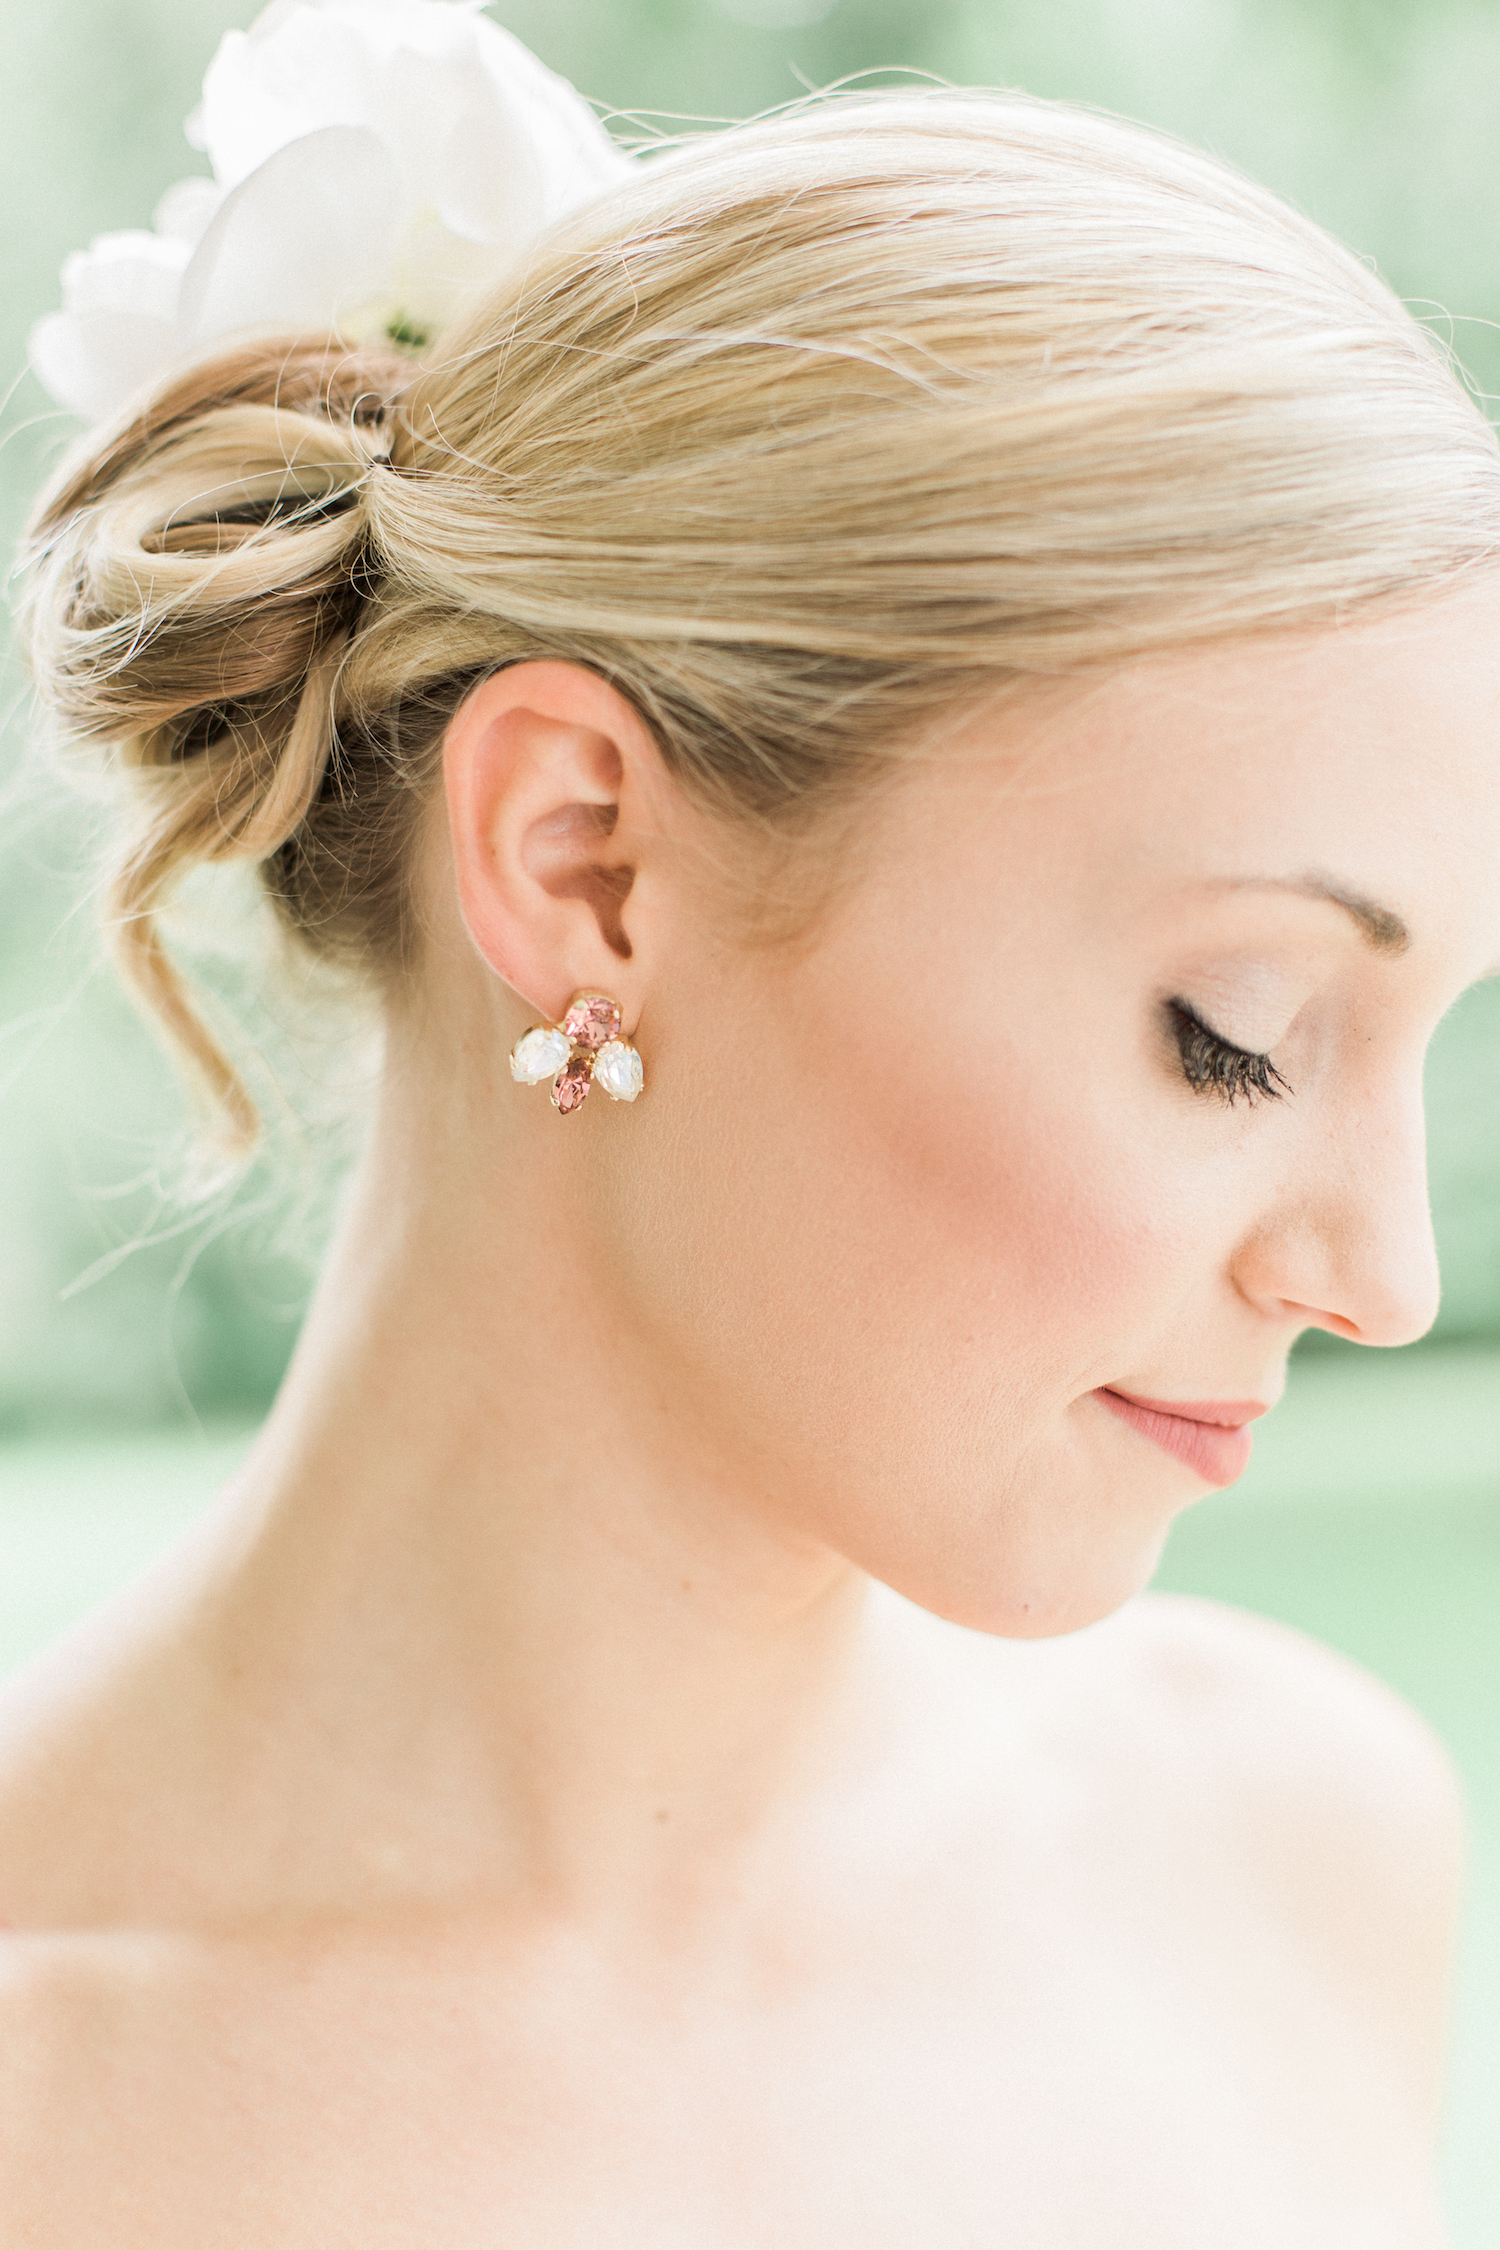 Wedding hairstyle undo with floral accents and accessories. Wedding earrings and accessories.